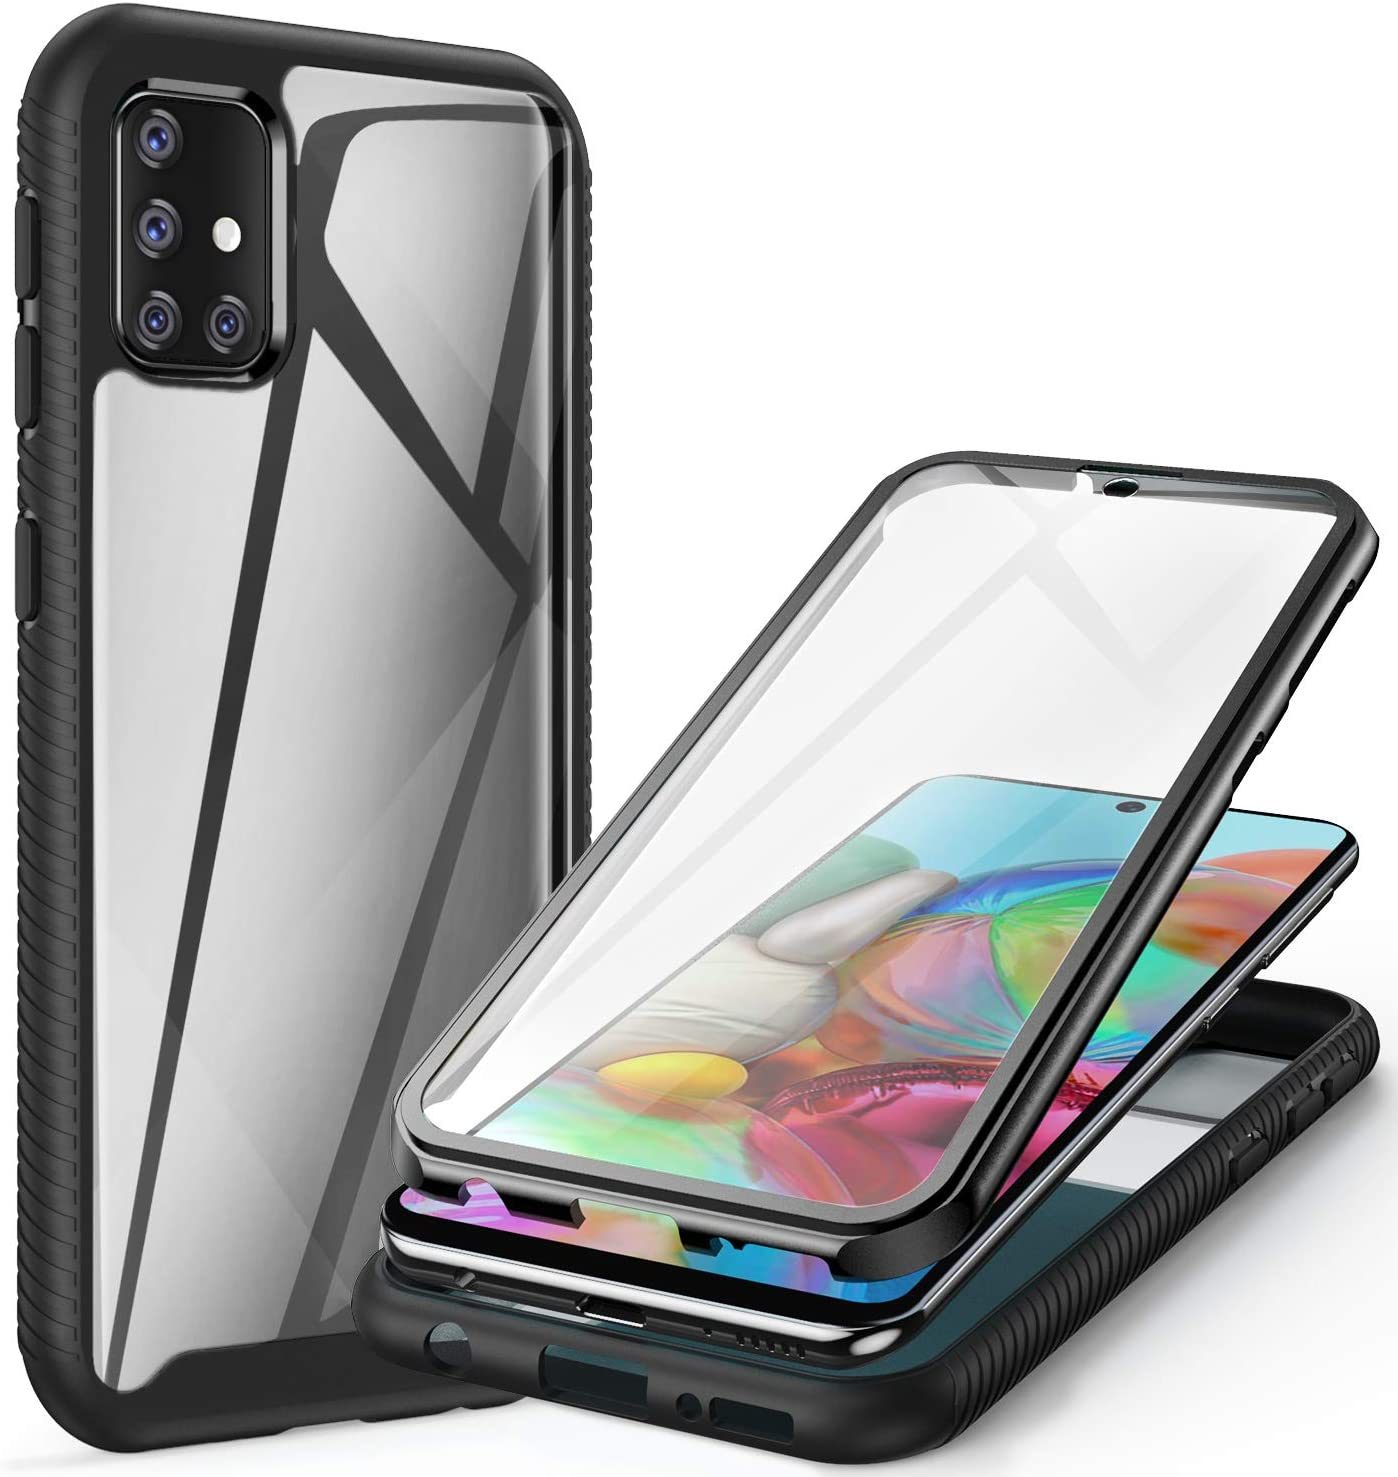 ivencase for Samsung Galaxy A41 Case Clear 360 Degree Full Body Protection Cover with Built-in Screen Protector Front and Back Bumper Shockproof Non Slip Case for Samsung Galaxy A41